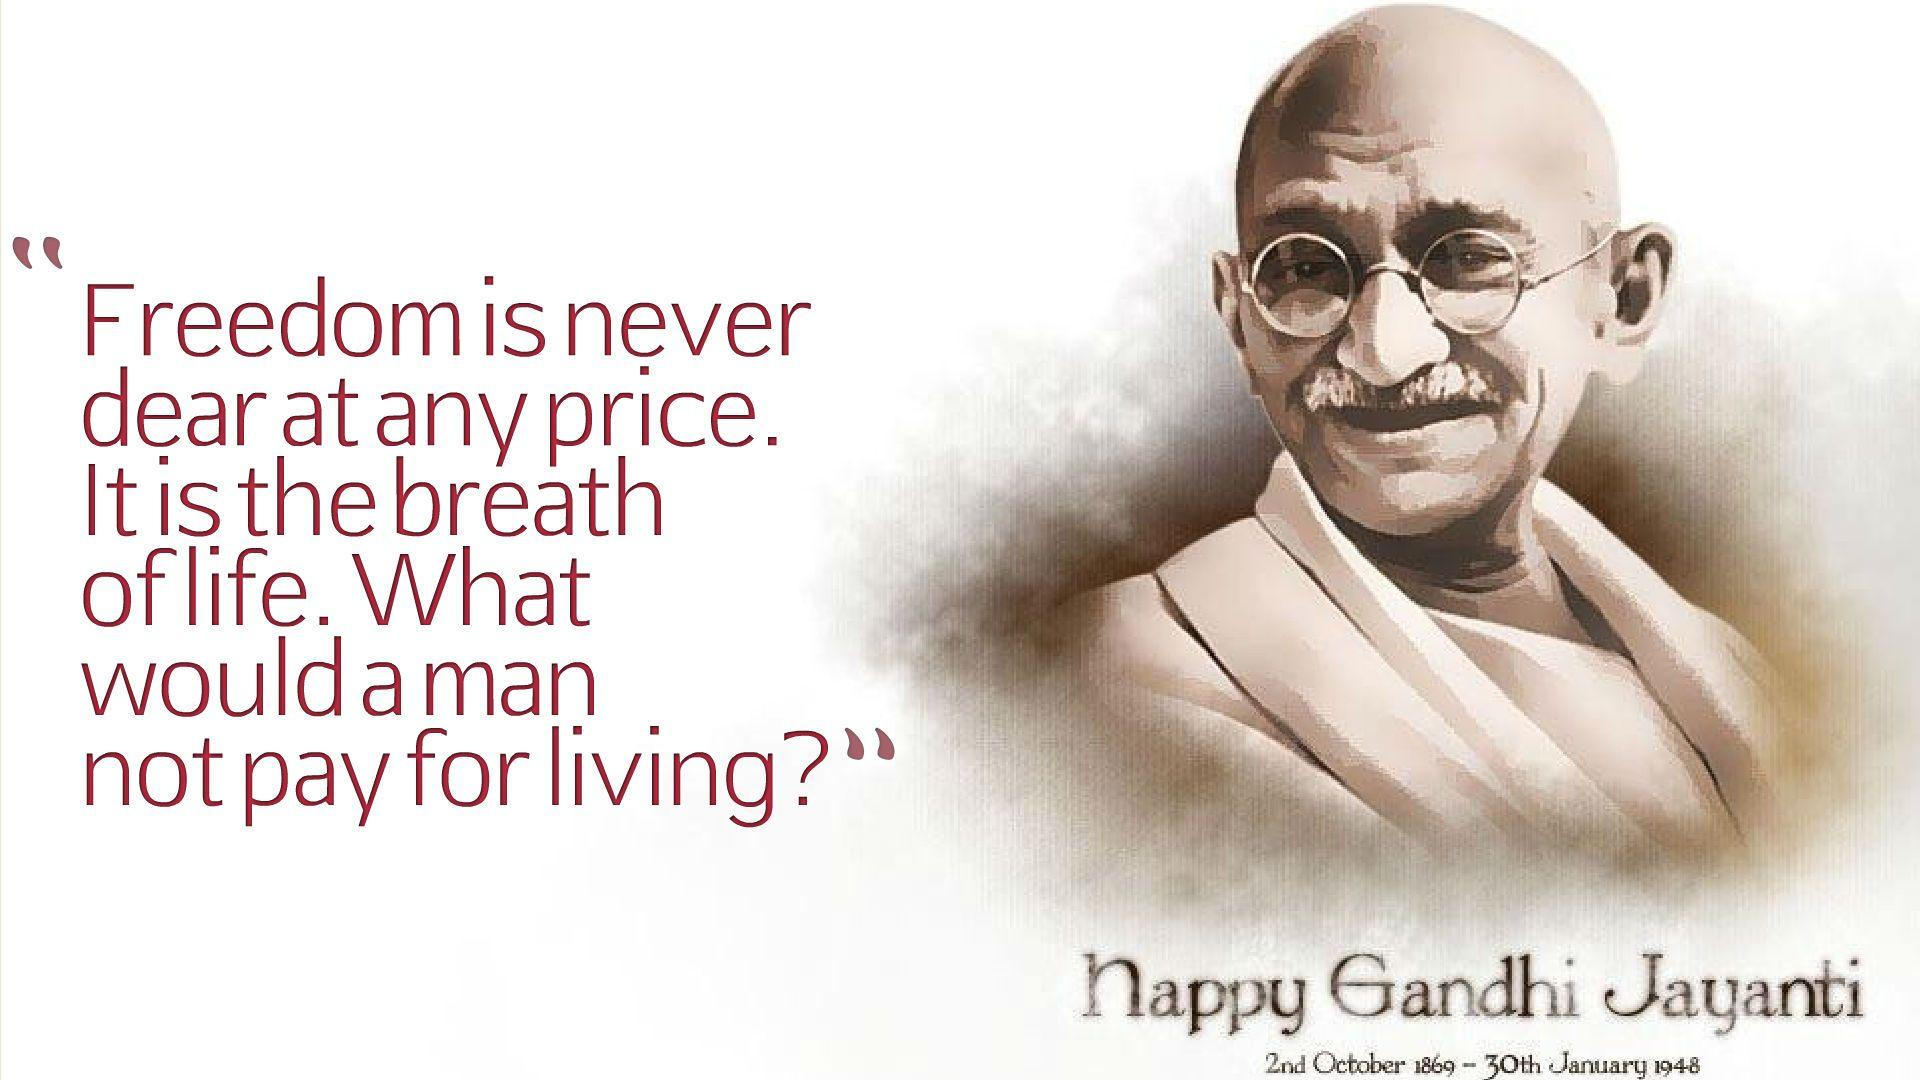 short essay on mahatma gandhi in tamil language Caged short essay on gandhiji in hindi language tamil telugu language 25 of him essay on marathi language short essay on mahatma gandhi gandhi.